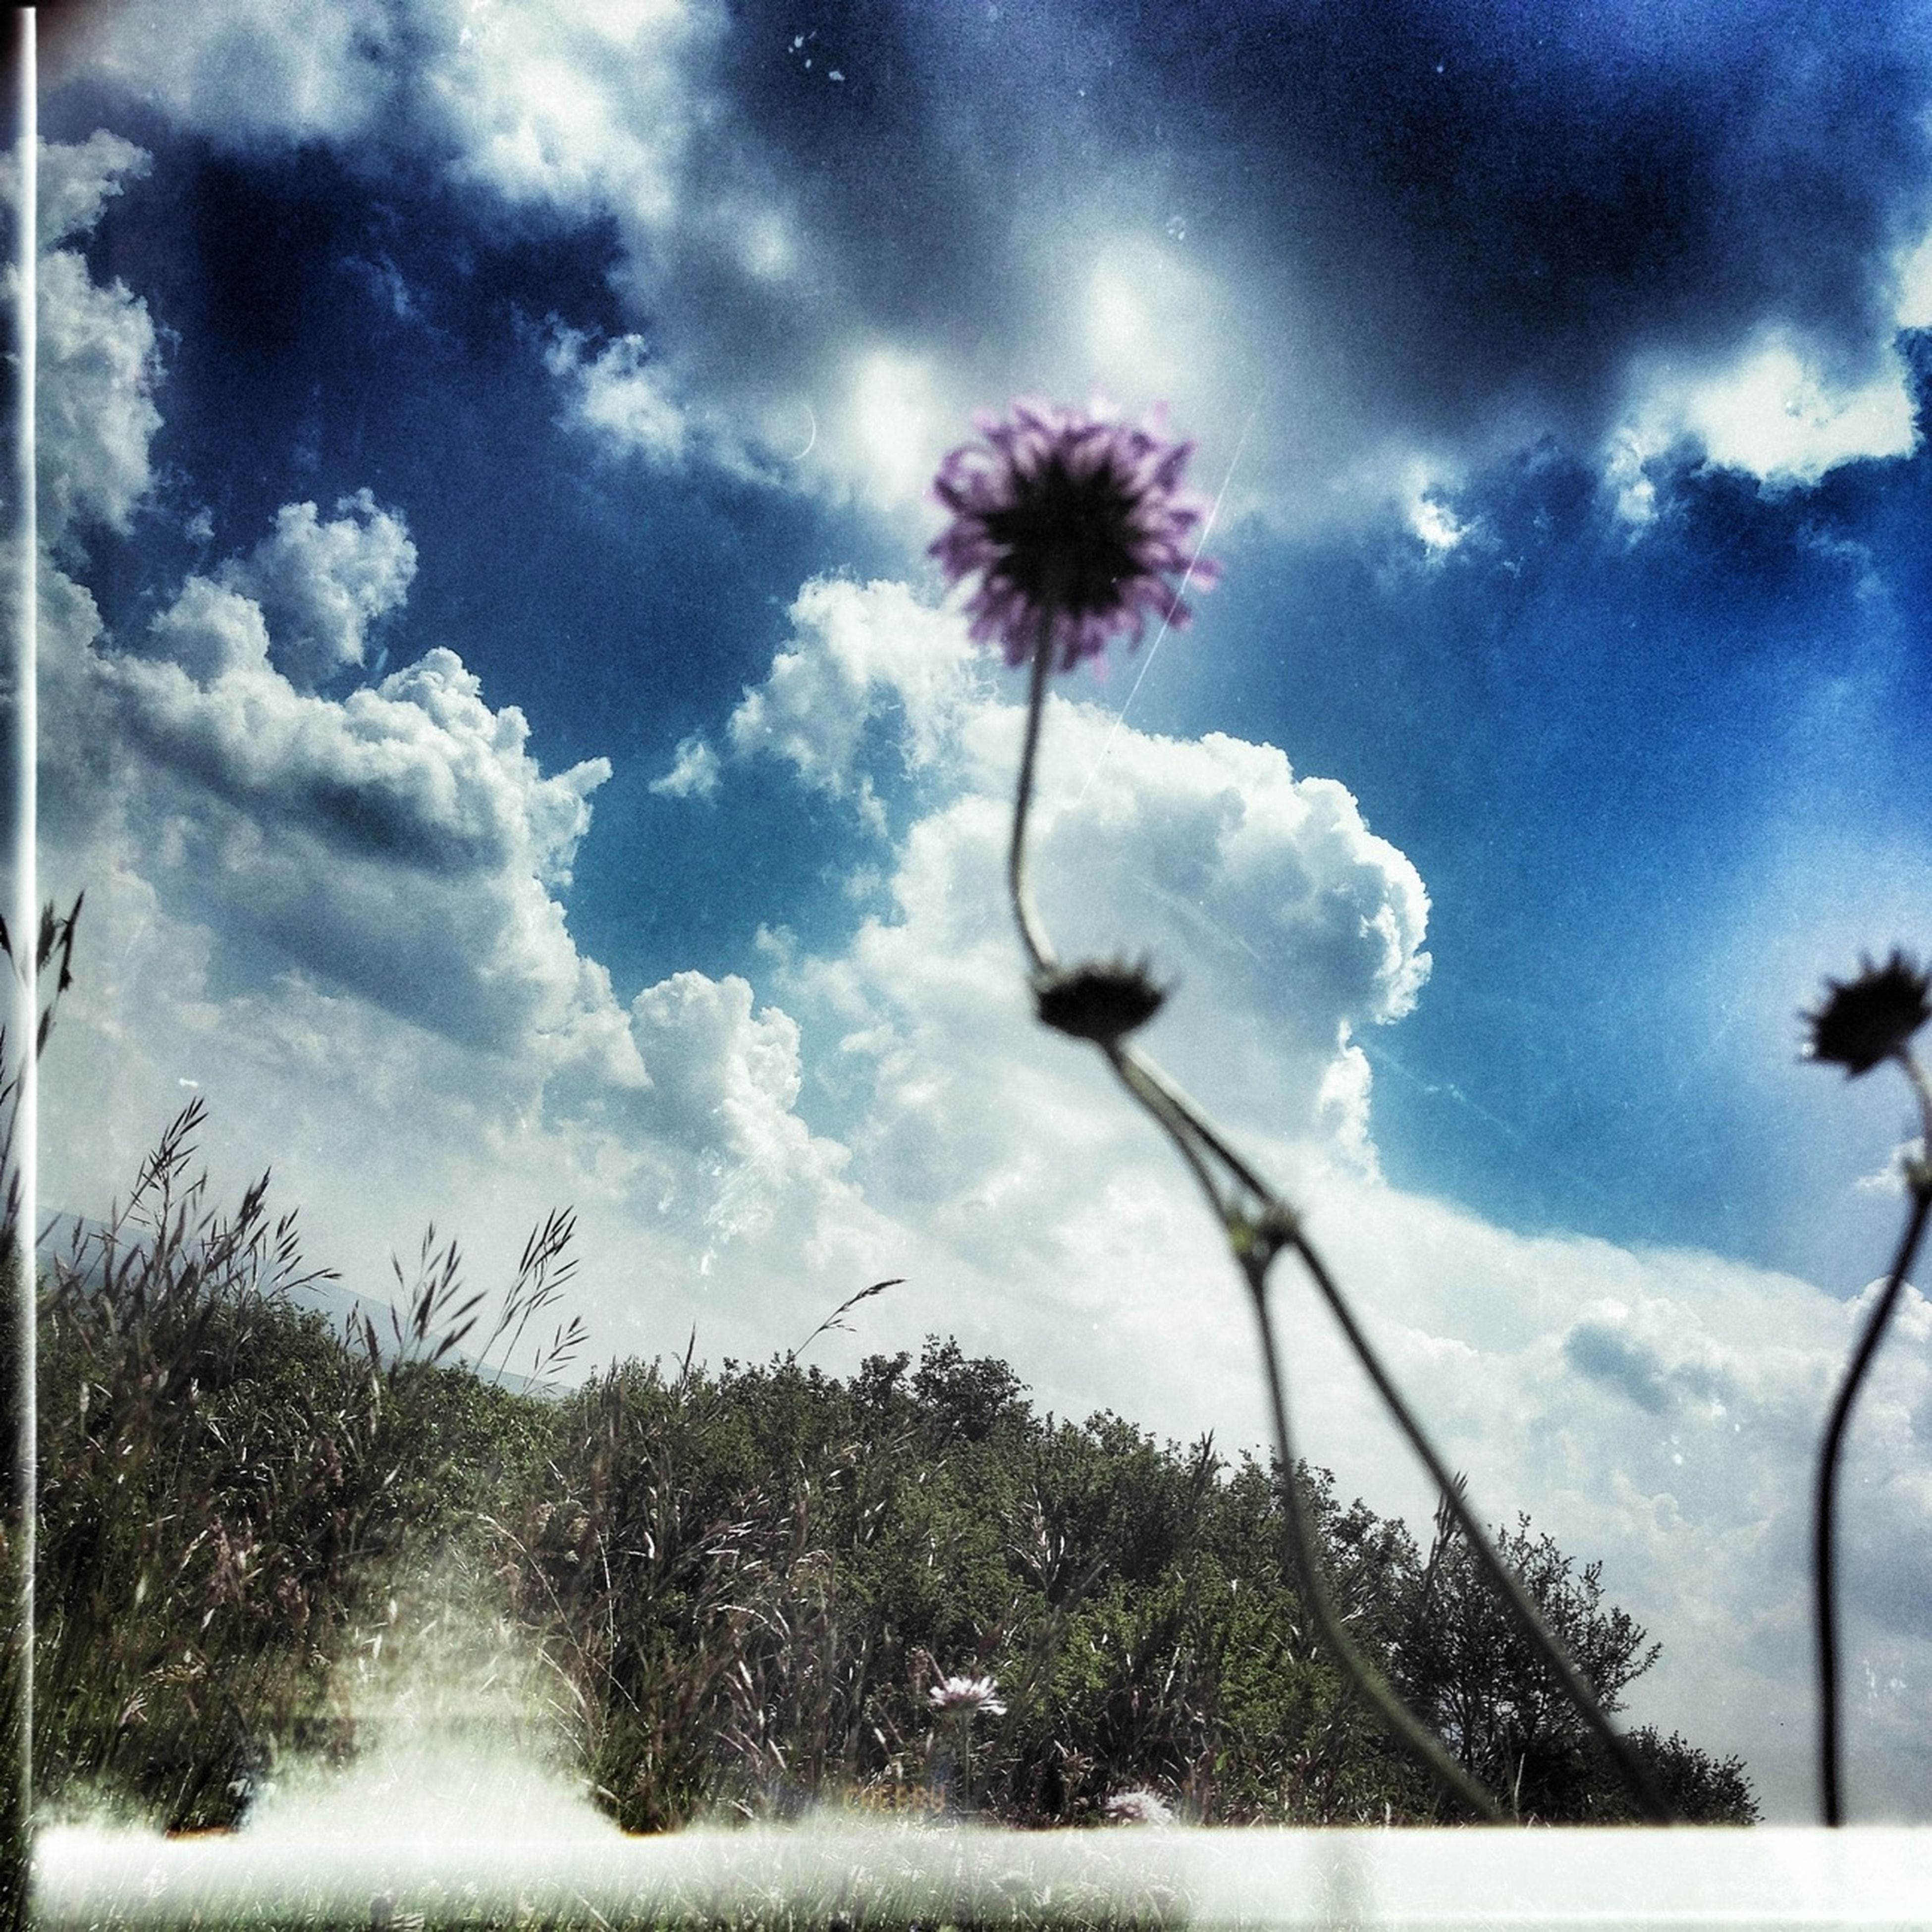 flower, sky, fragility, cloud - sky, freshness, growth, beauty in nature, stem, nature, low angle view, cloudy, plant, cloud, flower head, blooming, dandelion, in bloom, petal, blossom, day